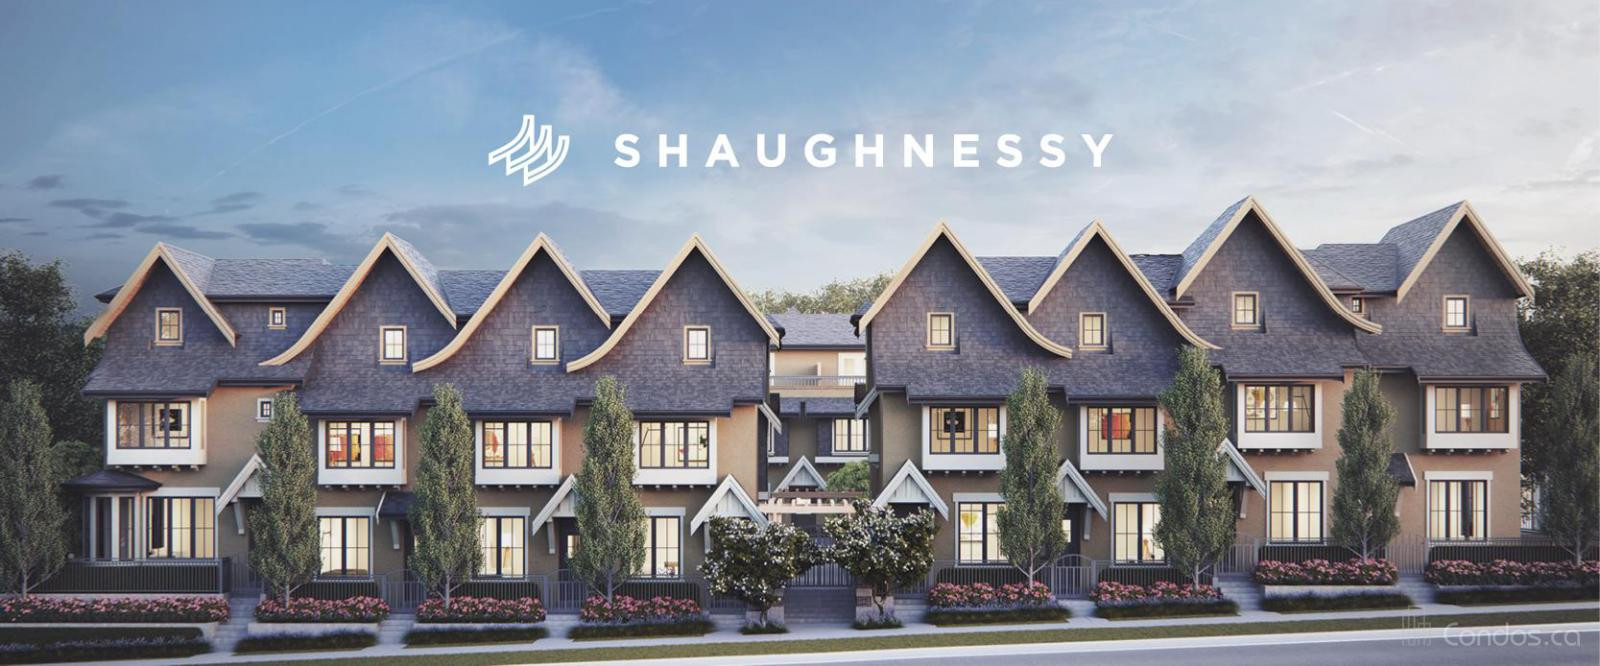 Shaughnessy Residences at 8123 Shaughnessy St, Vancouver 0